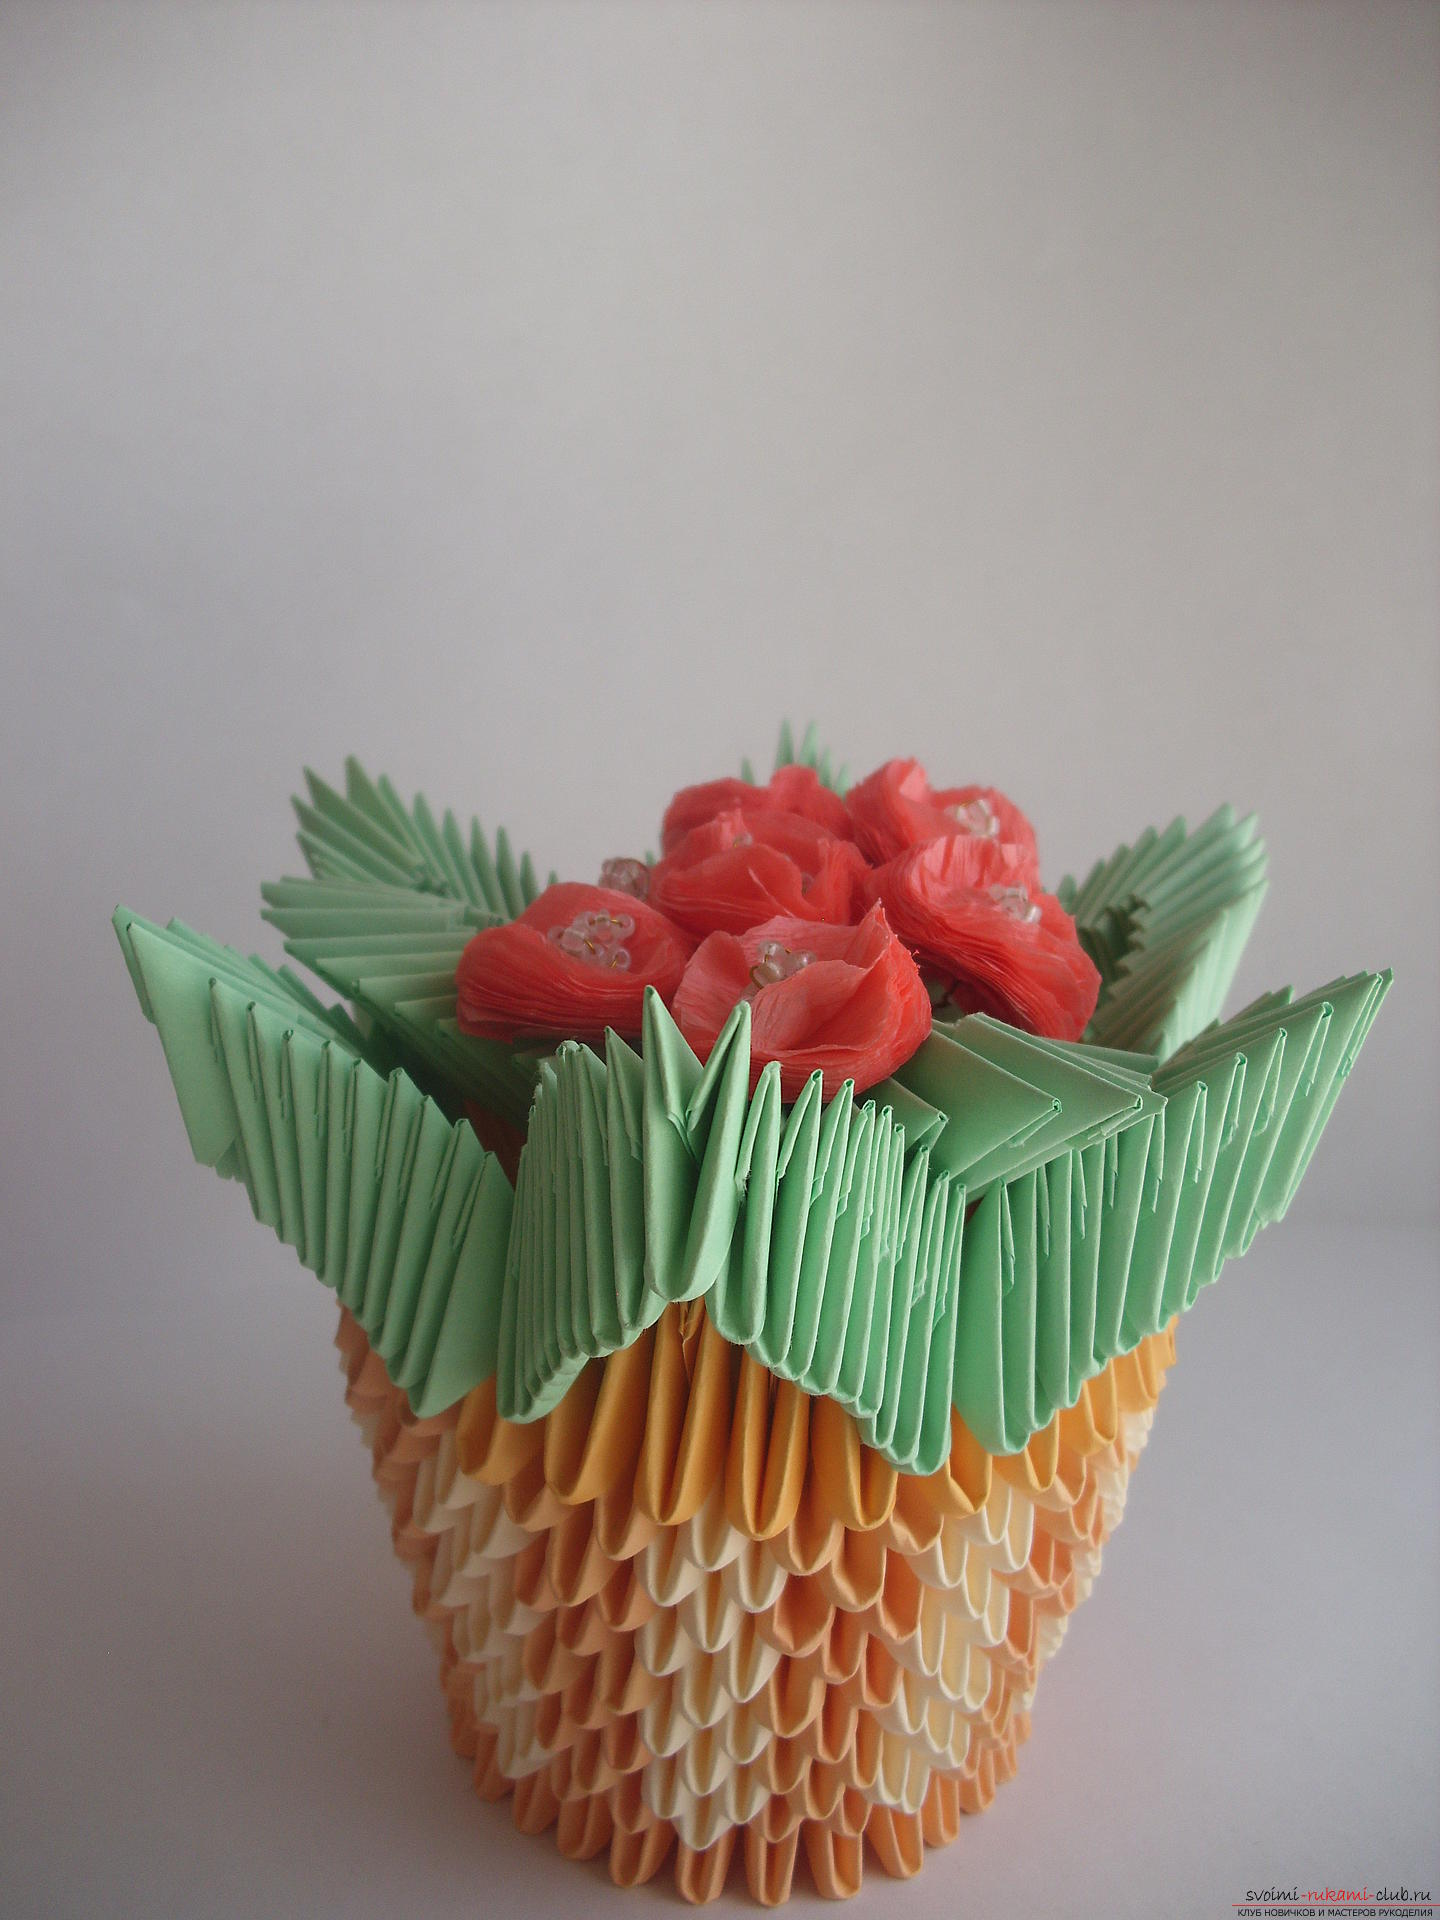 This master class will teach you how to make a violet in a vase in the technique of modular origami .. Photo №19